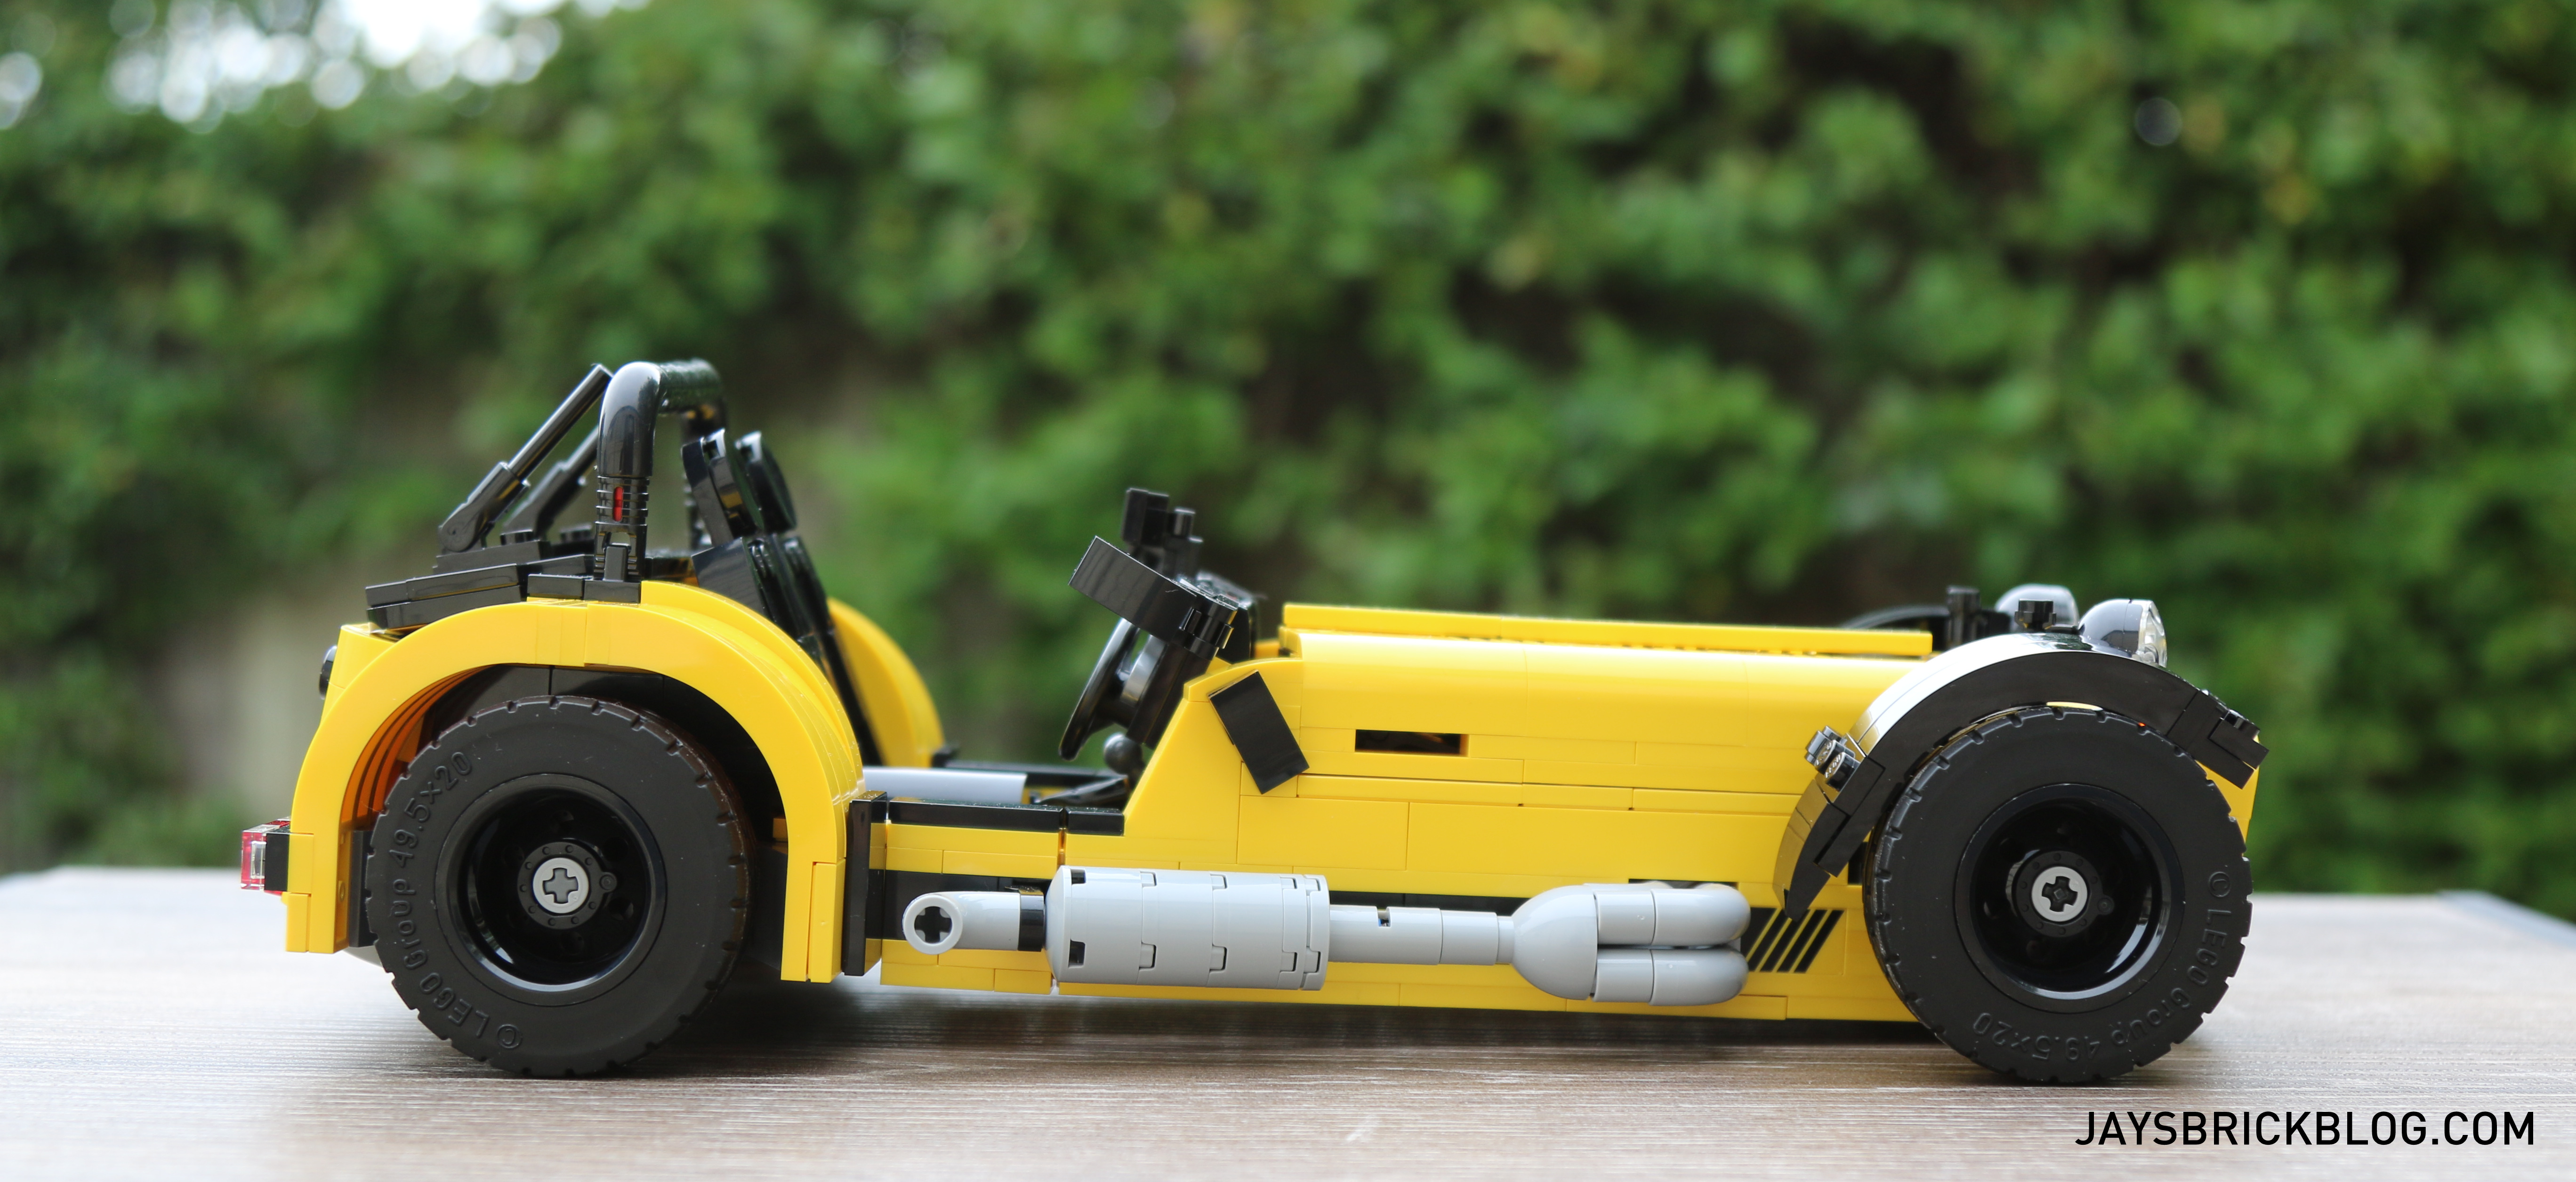 lego-21307-caterham-seven-side-view-2